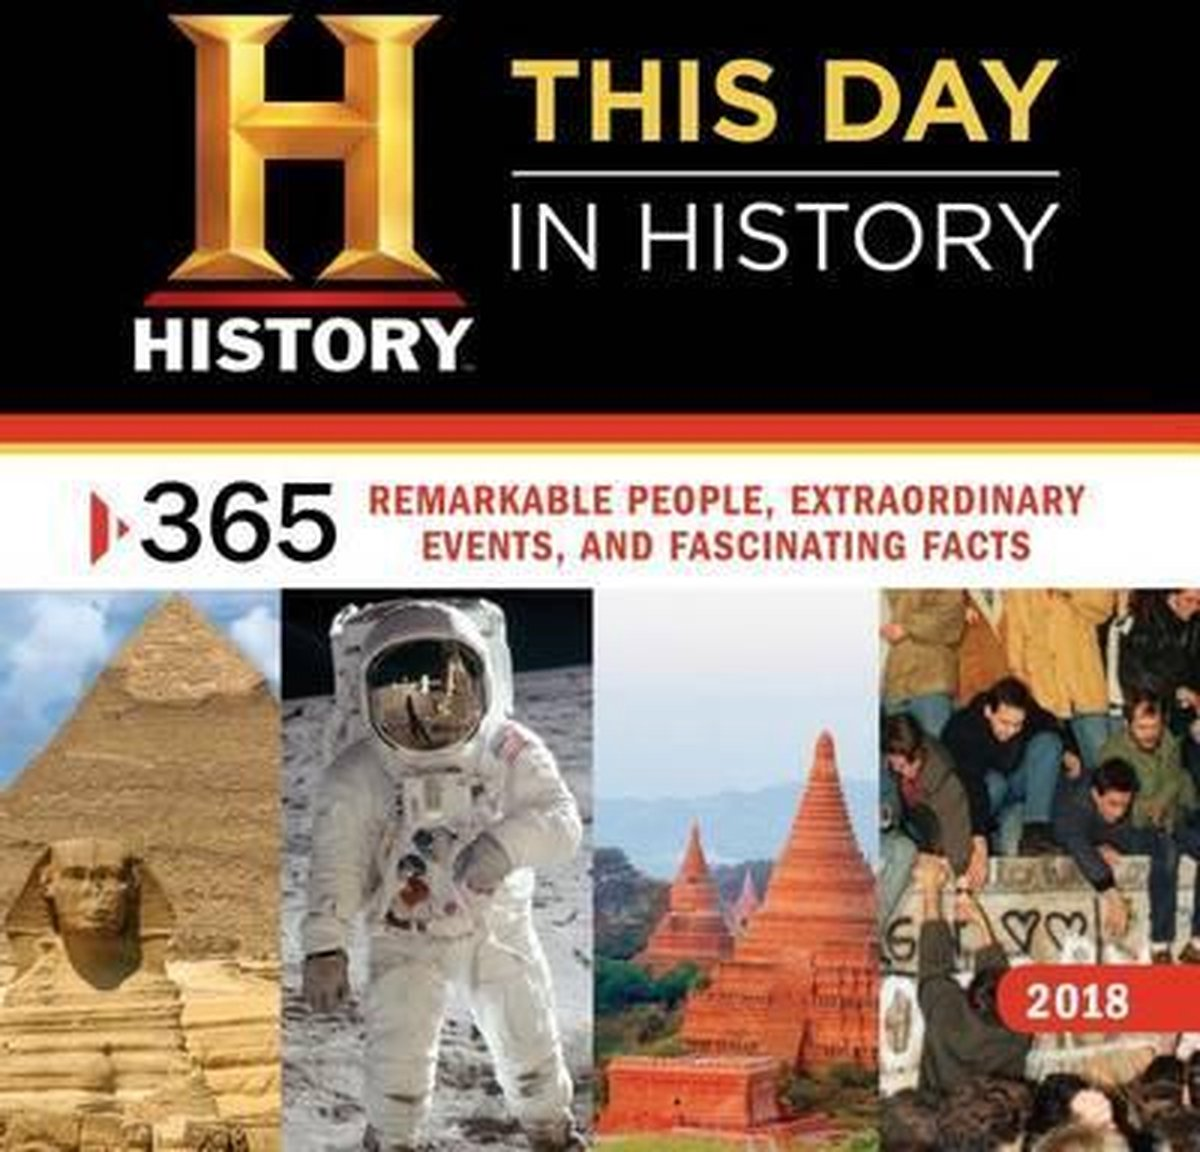 2018 History Channel This Day in History Wall Calendar